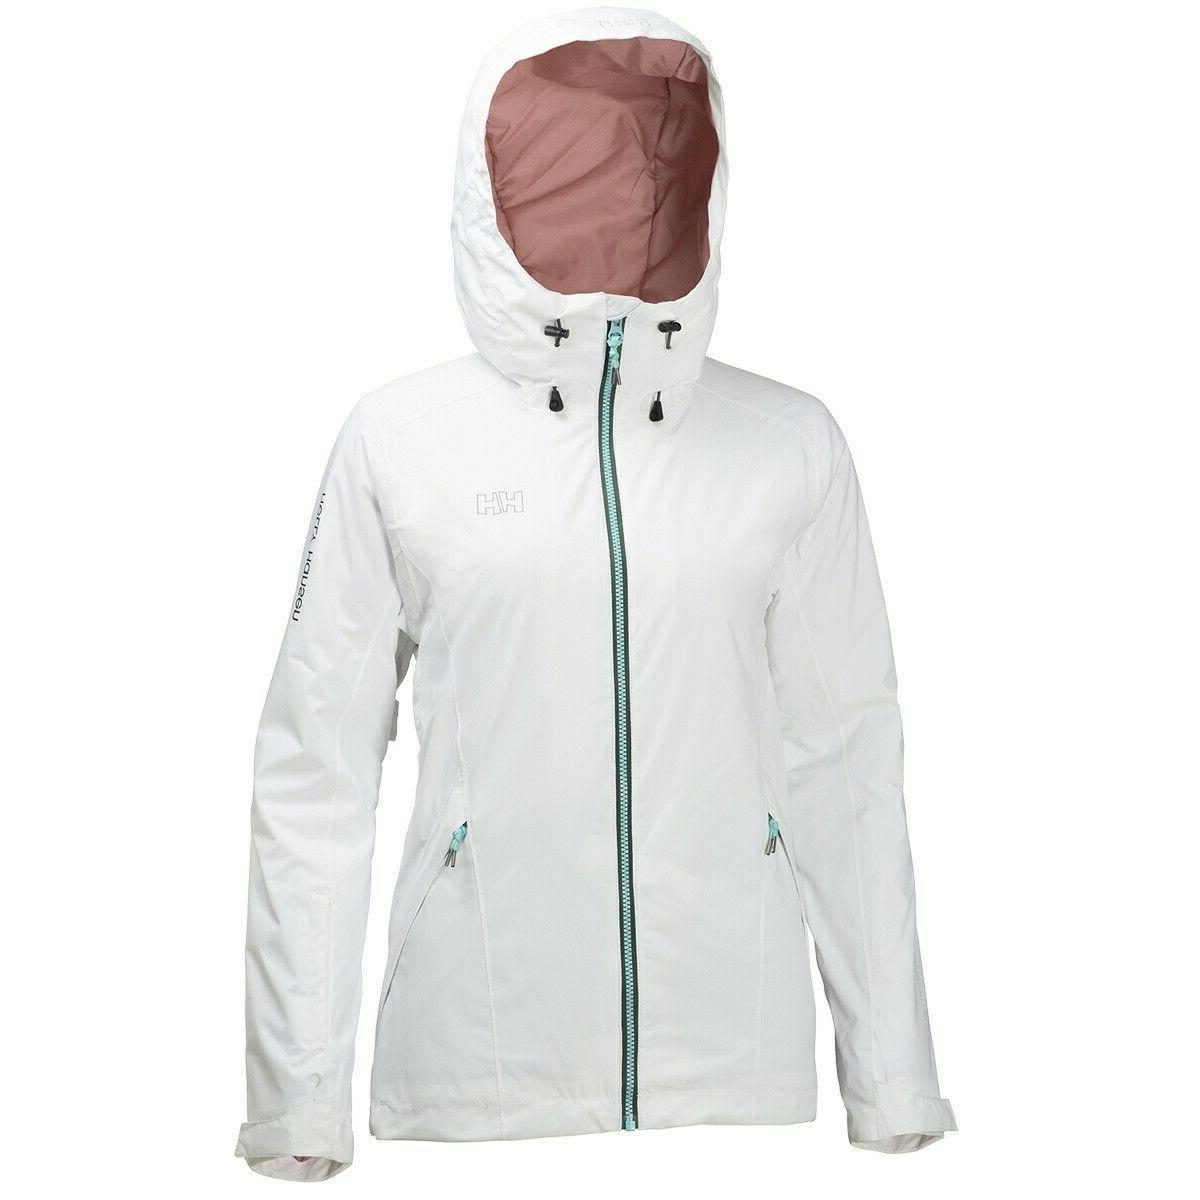 NWT Helly Women's Sundance Ski Winter White X-Large